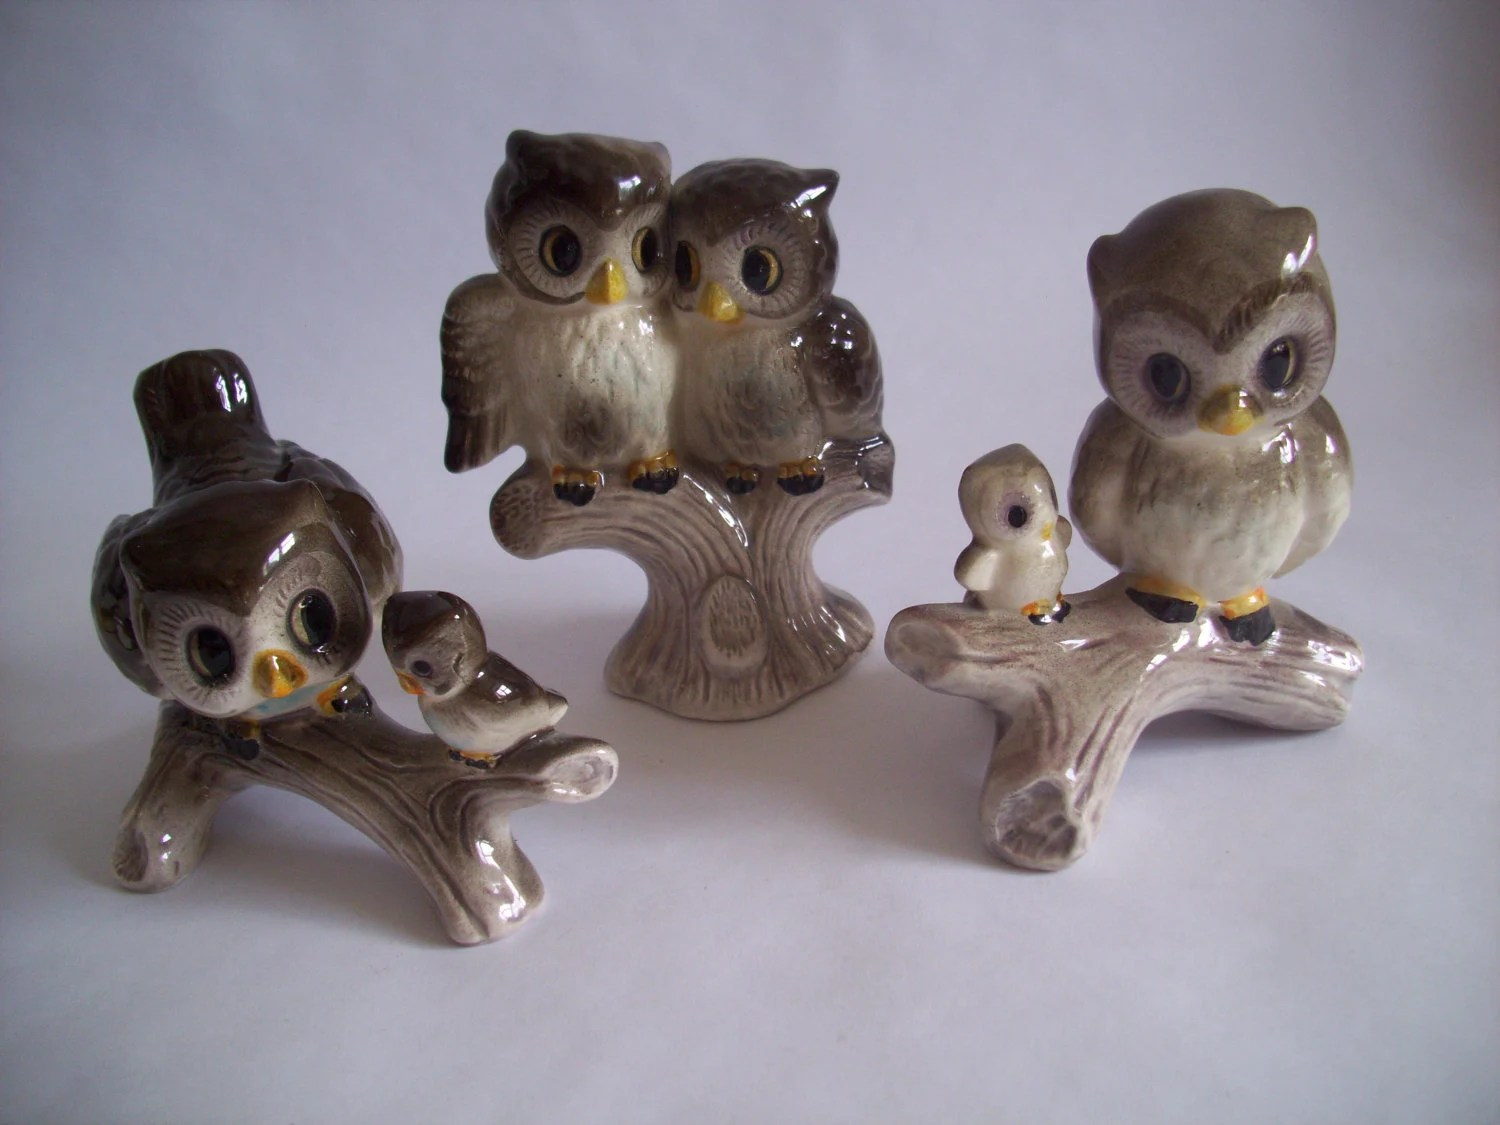 Vintage Trio of Kitsch Cute Brown and Grey Owl & Owlet Family Ornaments Figures